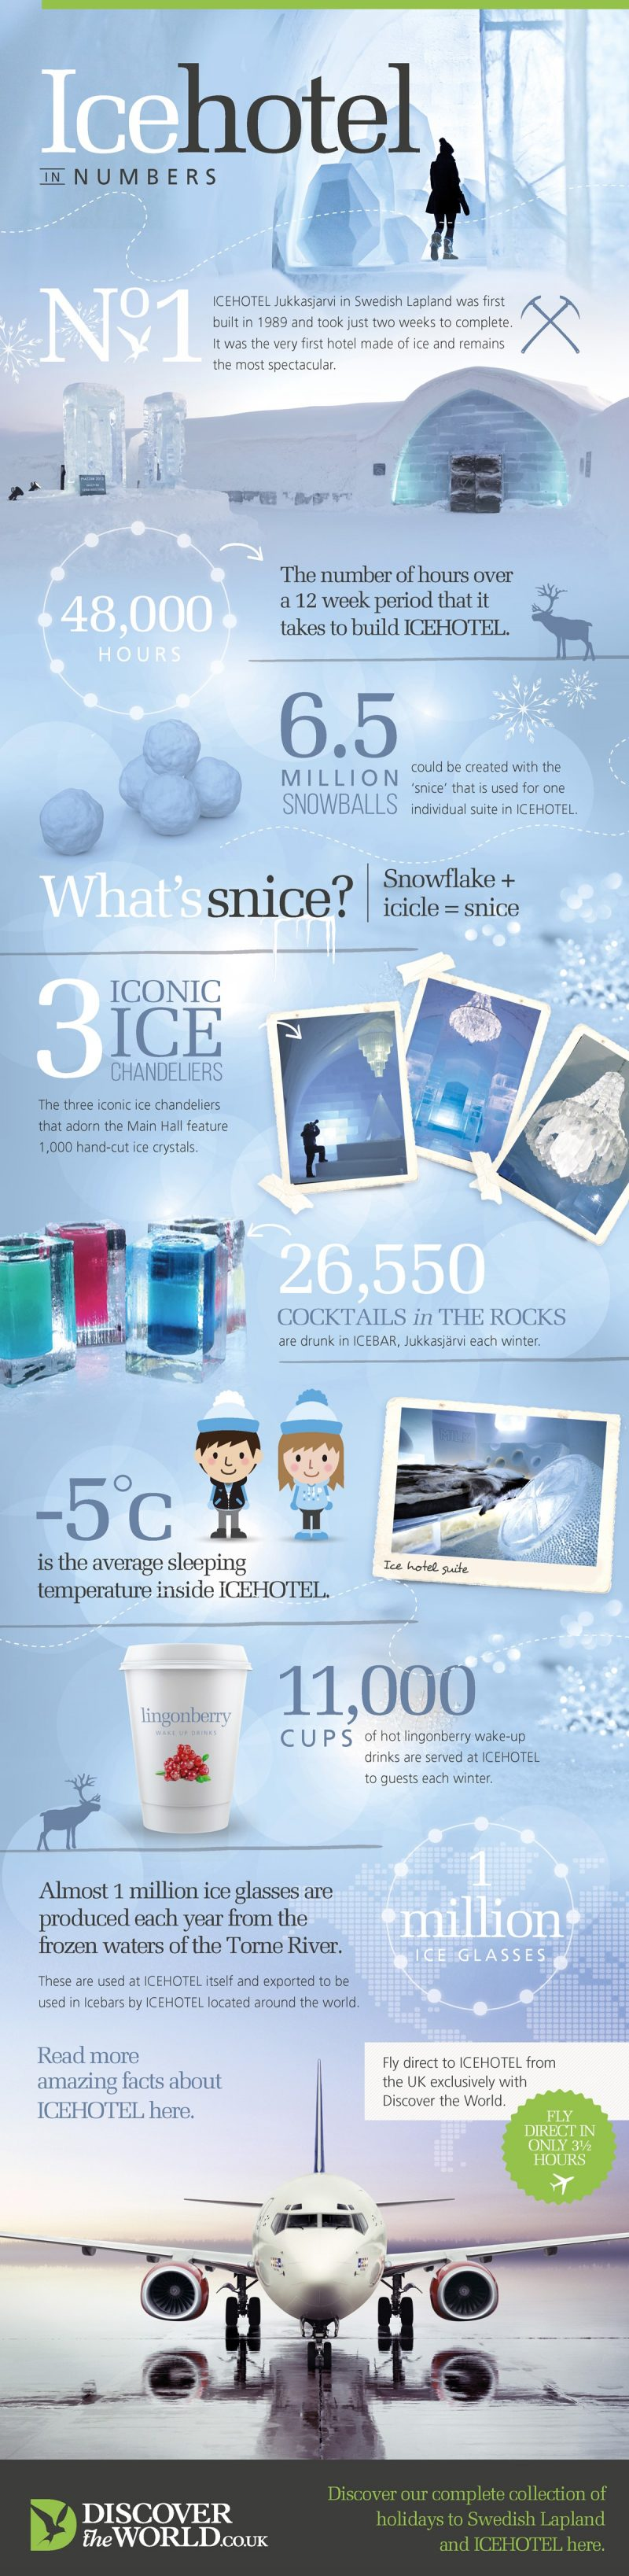 icehotel in numbers